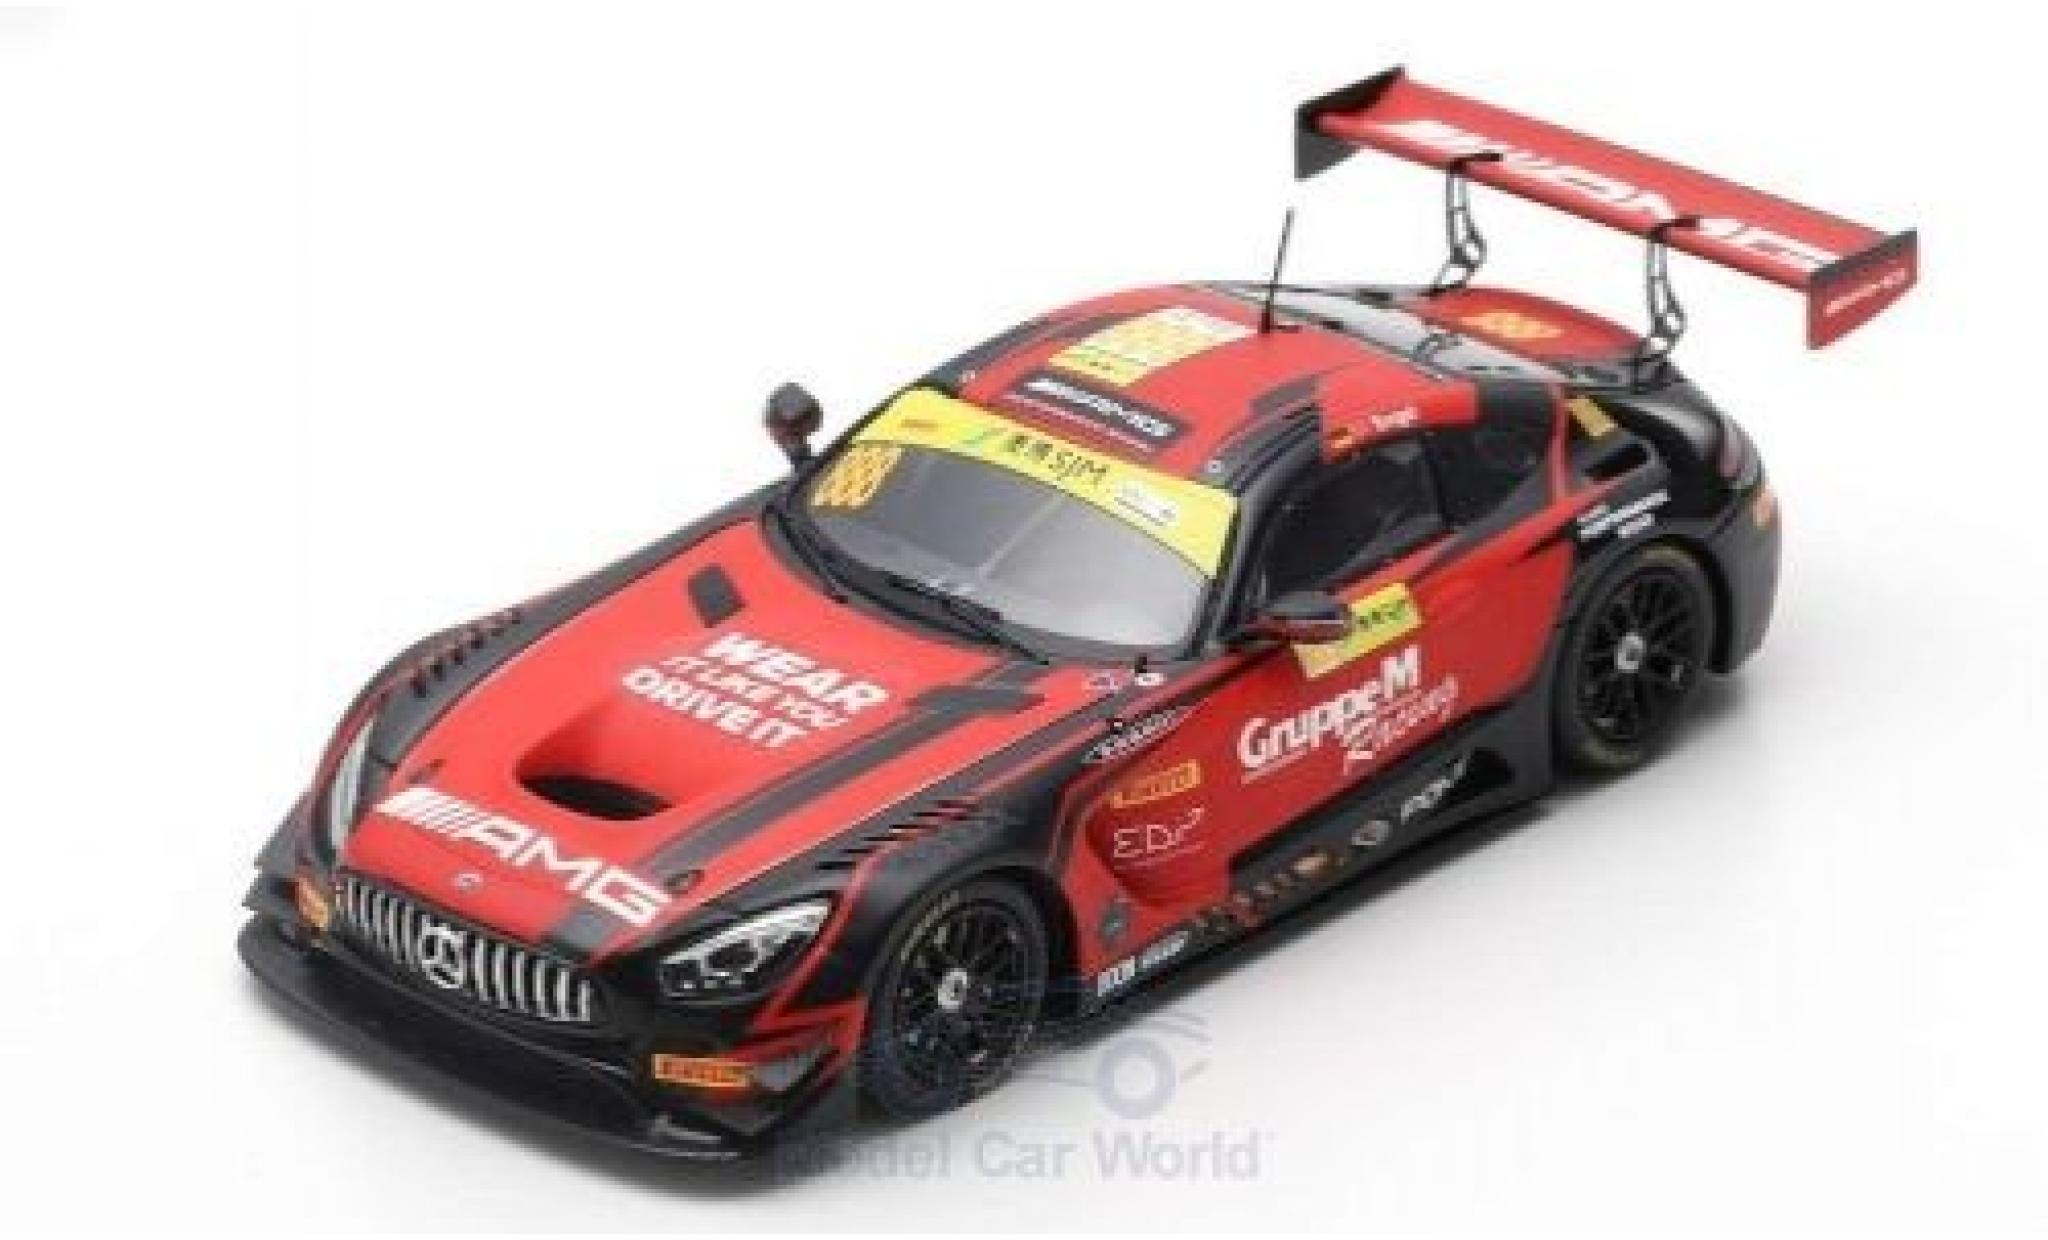 Mercedes AMG GT 1/18 Spark 3 No.888 -AMG Team GruppeM Racing Fia GT World Cup Macau 2018 M.Engel